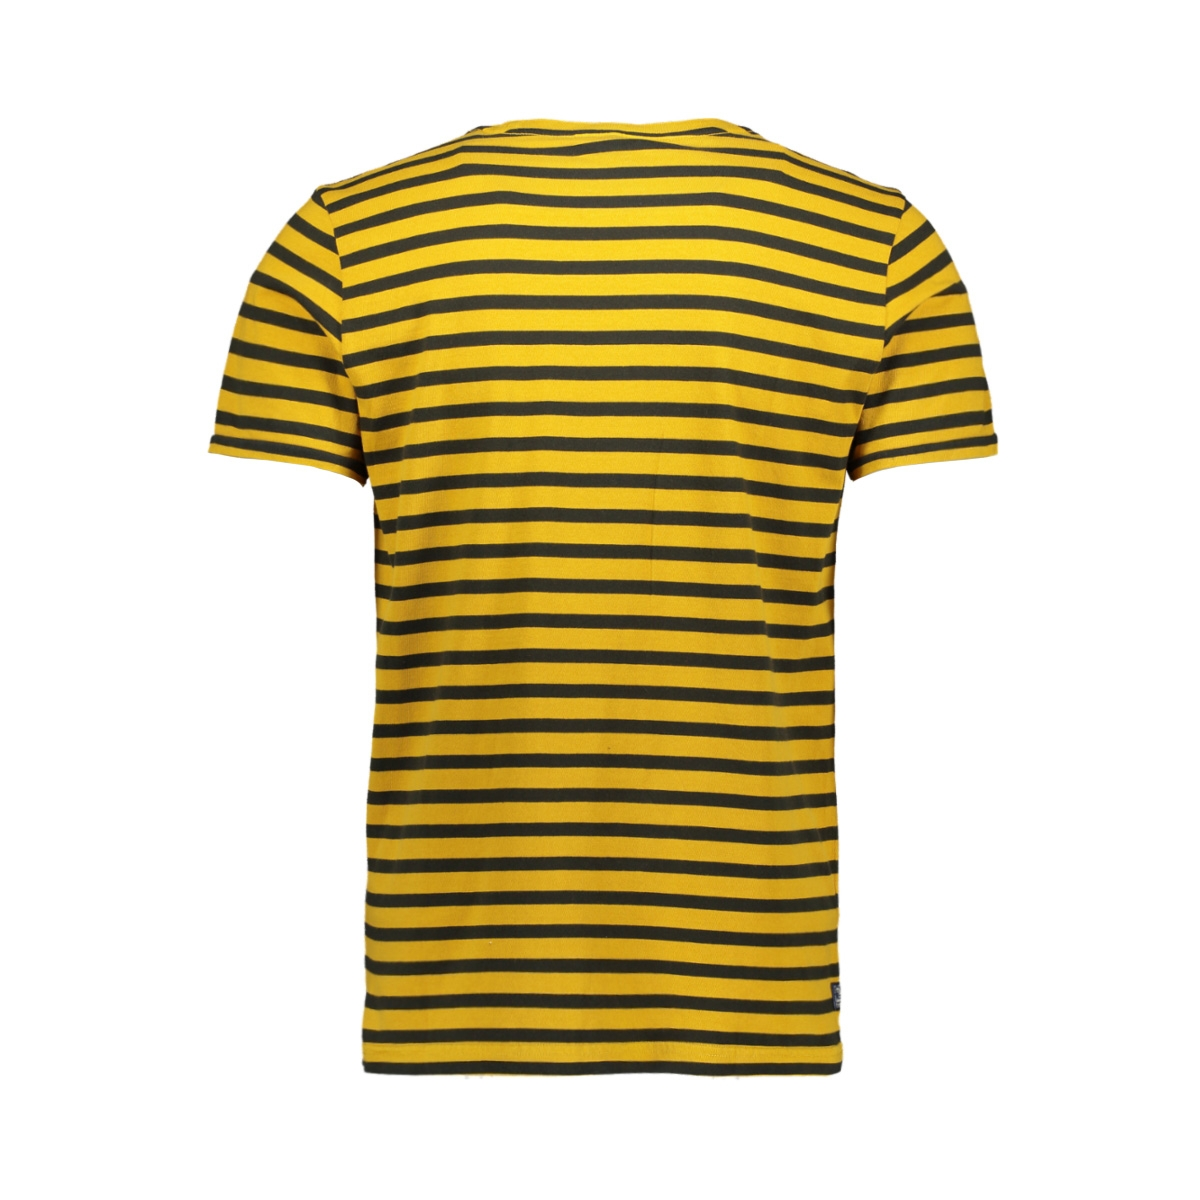 single jersey printed yarn dyed t shirt ptss201585 pme legend t-shirt 1074